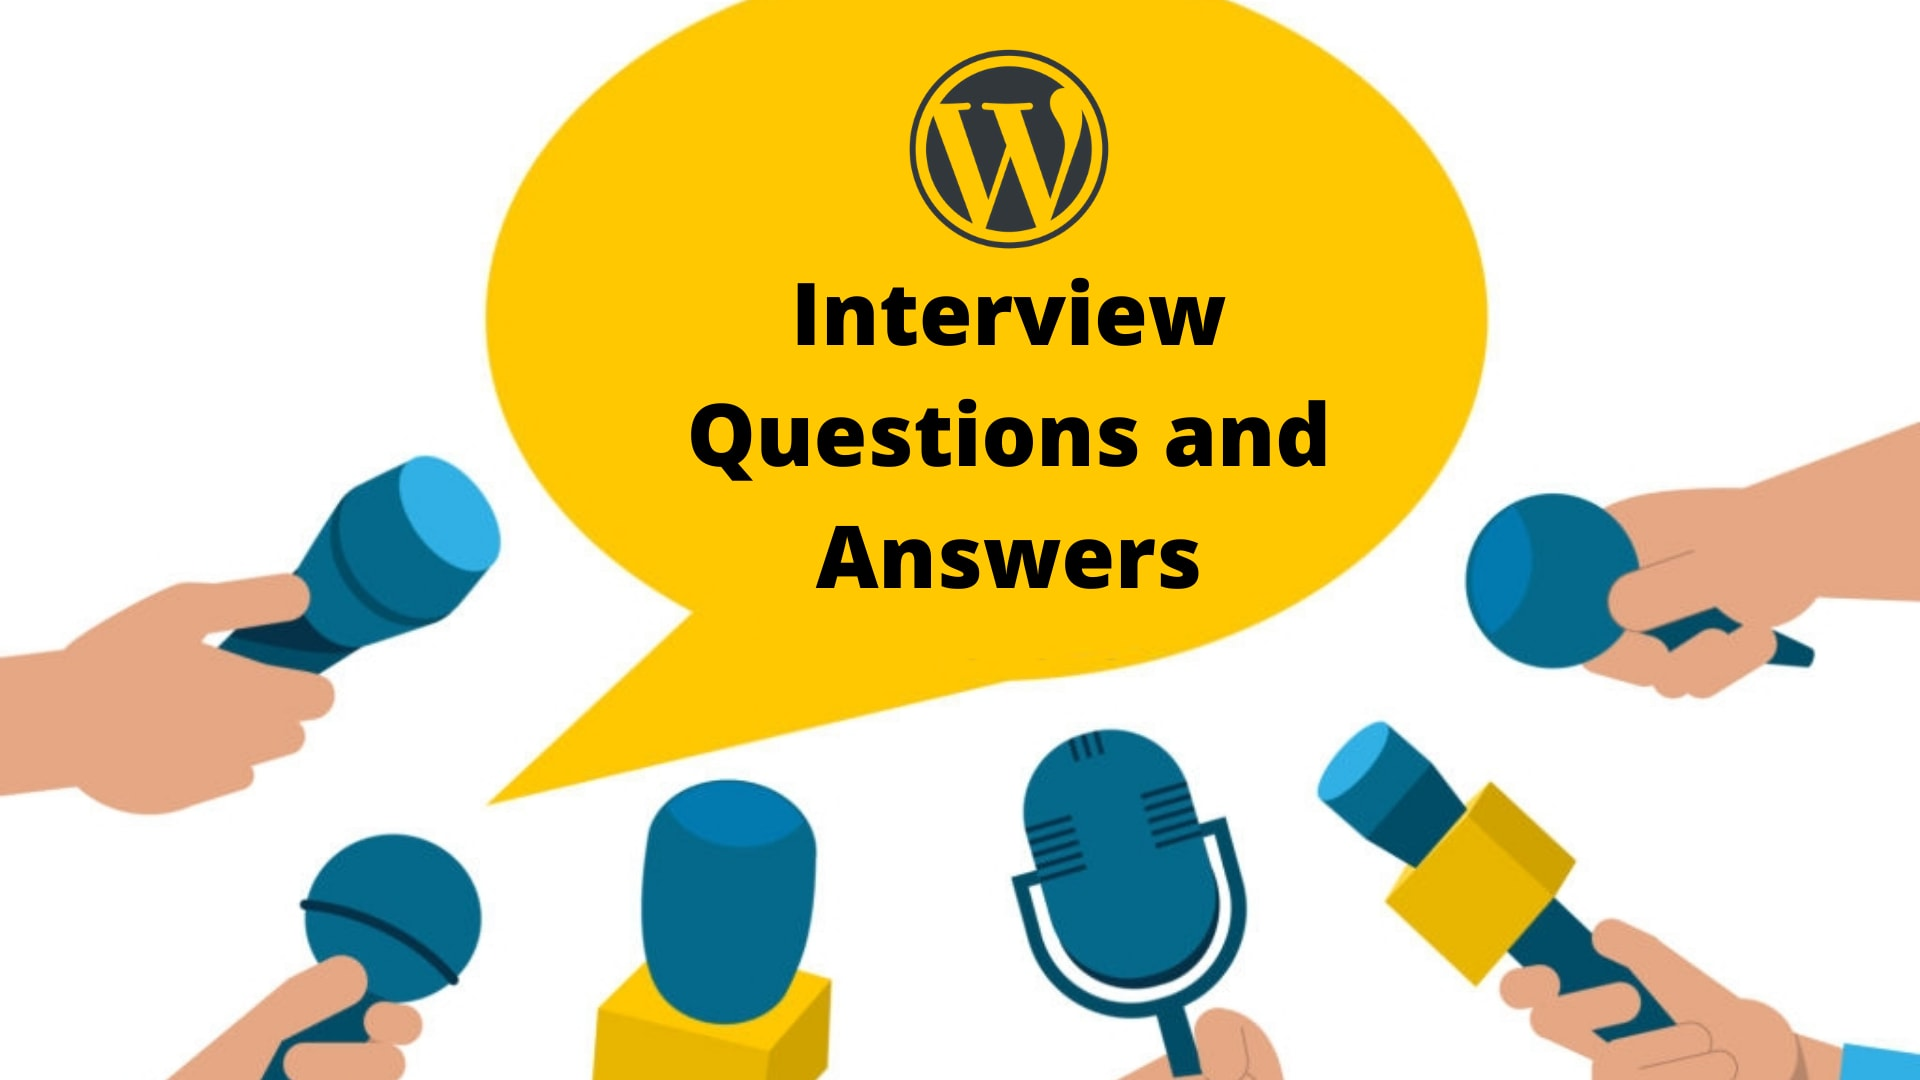 wordpress interview questions - Top 35+ Wordpress Interview Questions & Answers in 2020